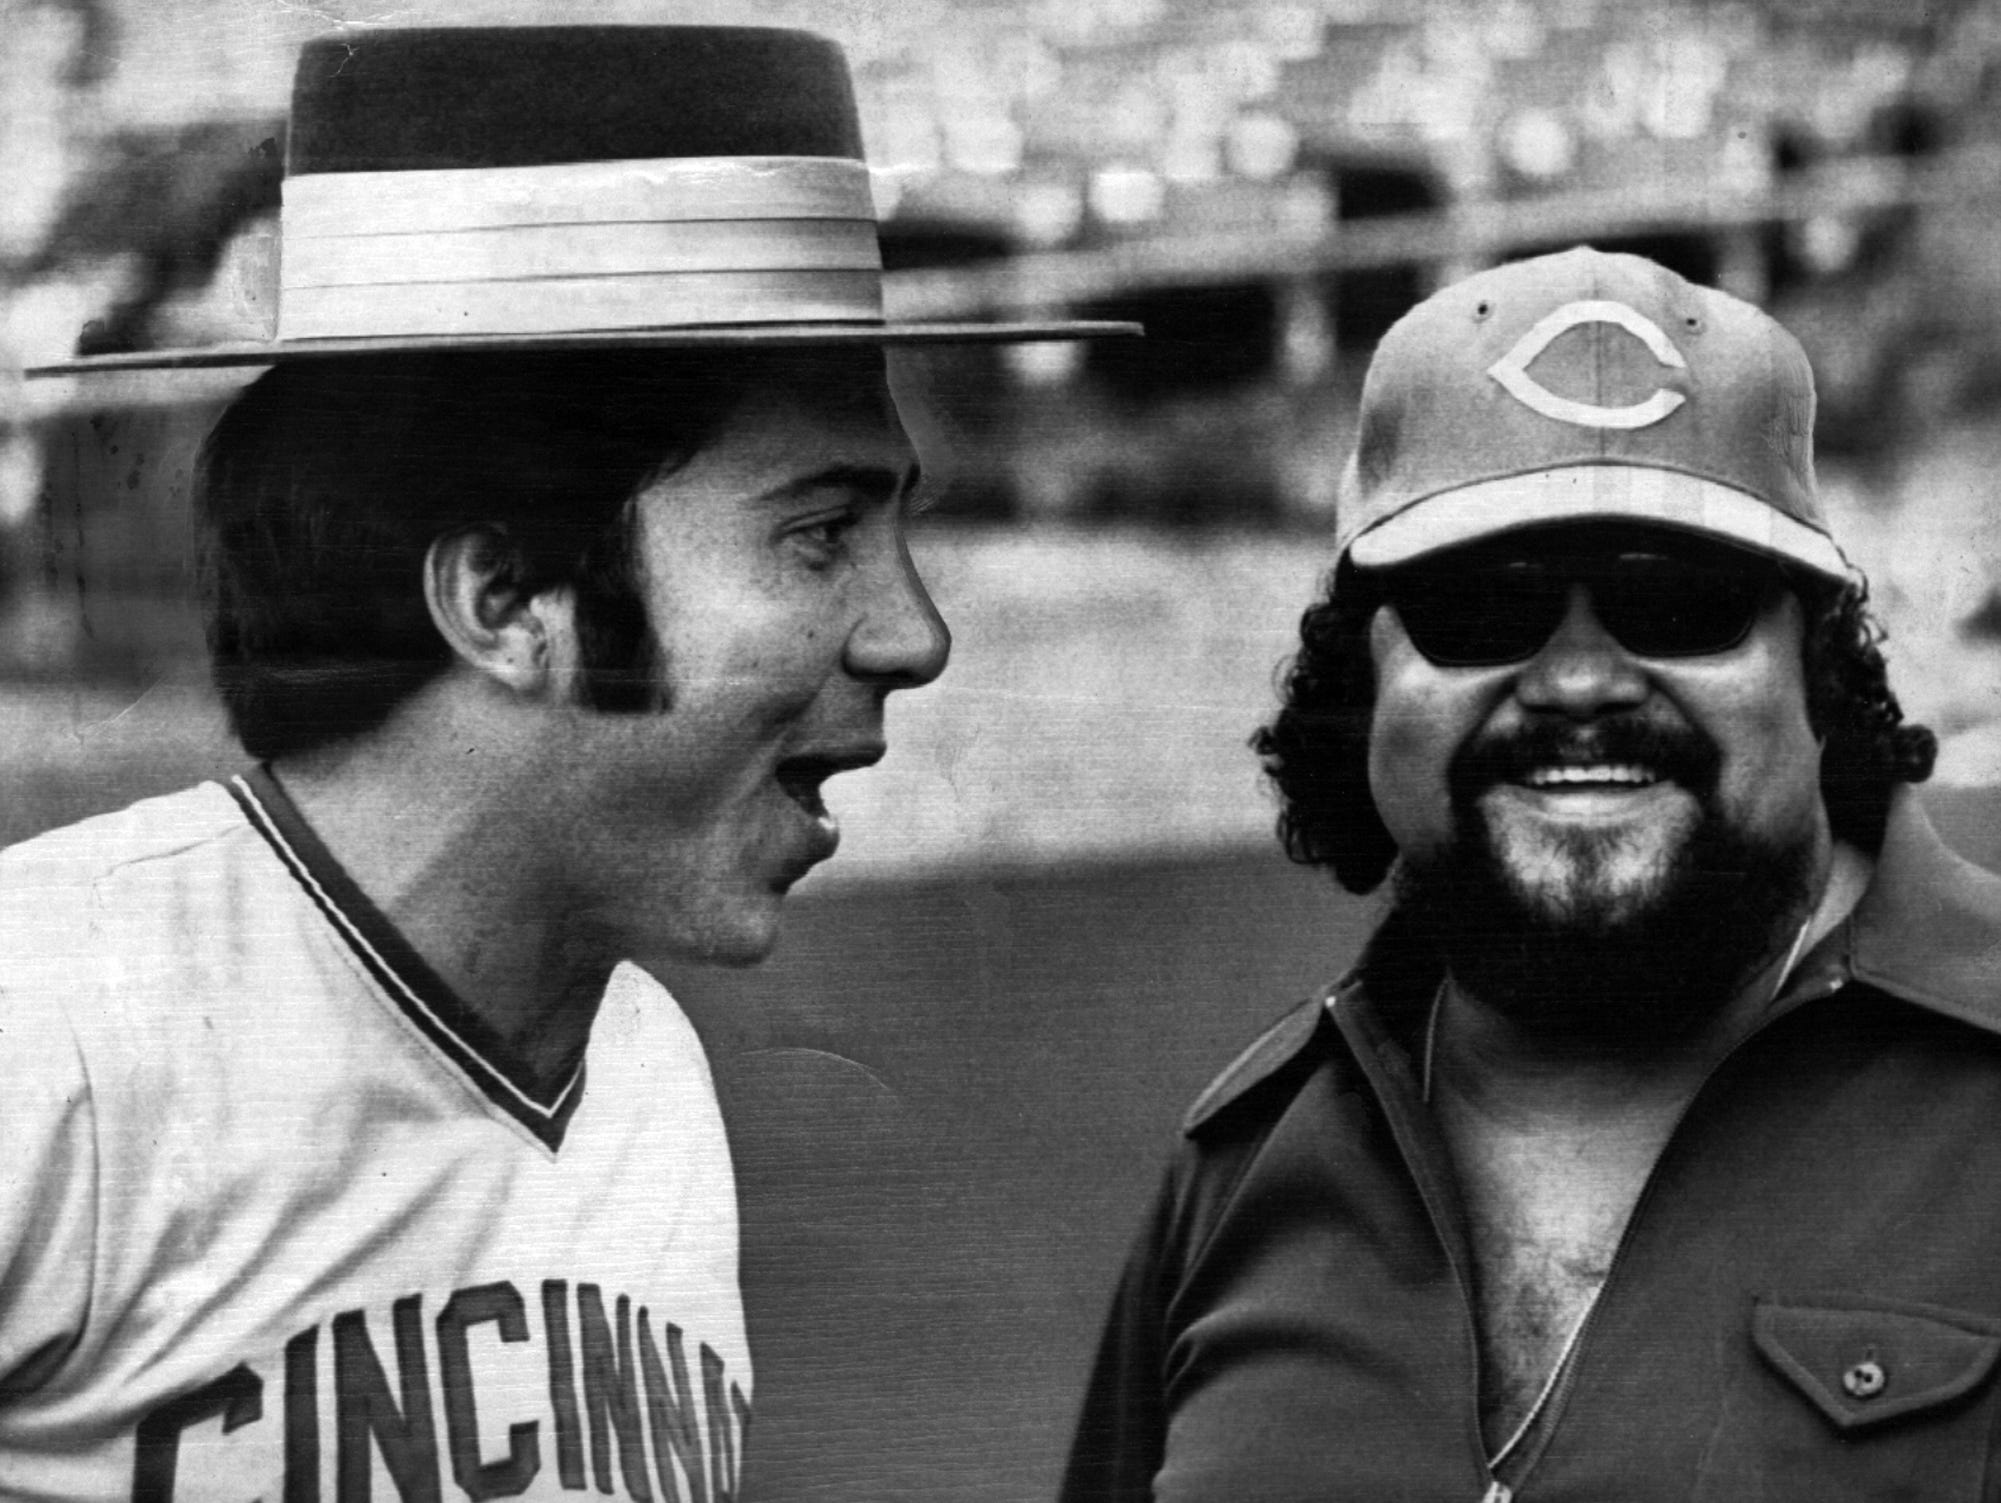 OCTOBER 19, 1972: Johnny Bench of the Cincinnati Reds and Ron Townson of the popular singing group, the Fifth Dimension, trade hats as they gag it up for the photographer at the Oakland Coliseum today. Bench and his teammates were waiting for the start of the forth game of the World Series with the Oakland A's. The singing group was on hand to sing the National Anthem during pregame ceremonies. AP Photo scanned August 7, 2013